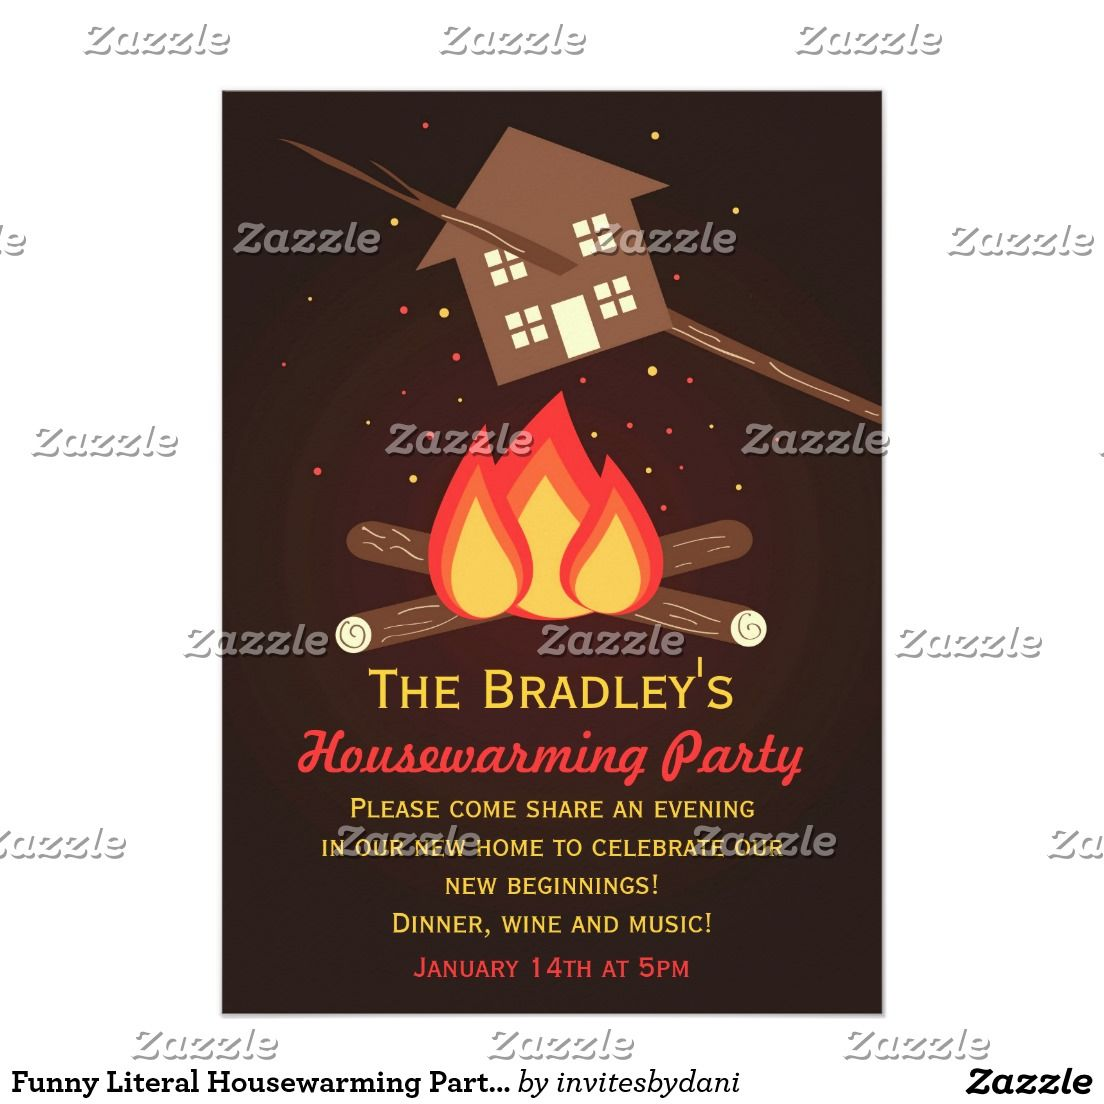 Funny Literal Housewarming Party Invitations | Housewarming Party ...